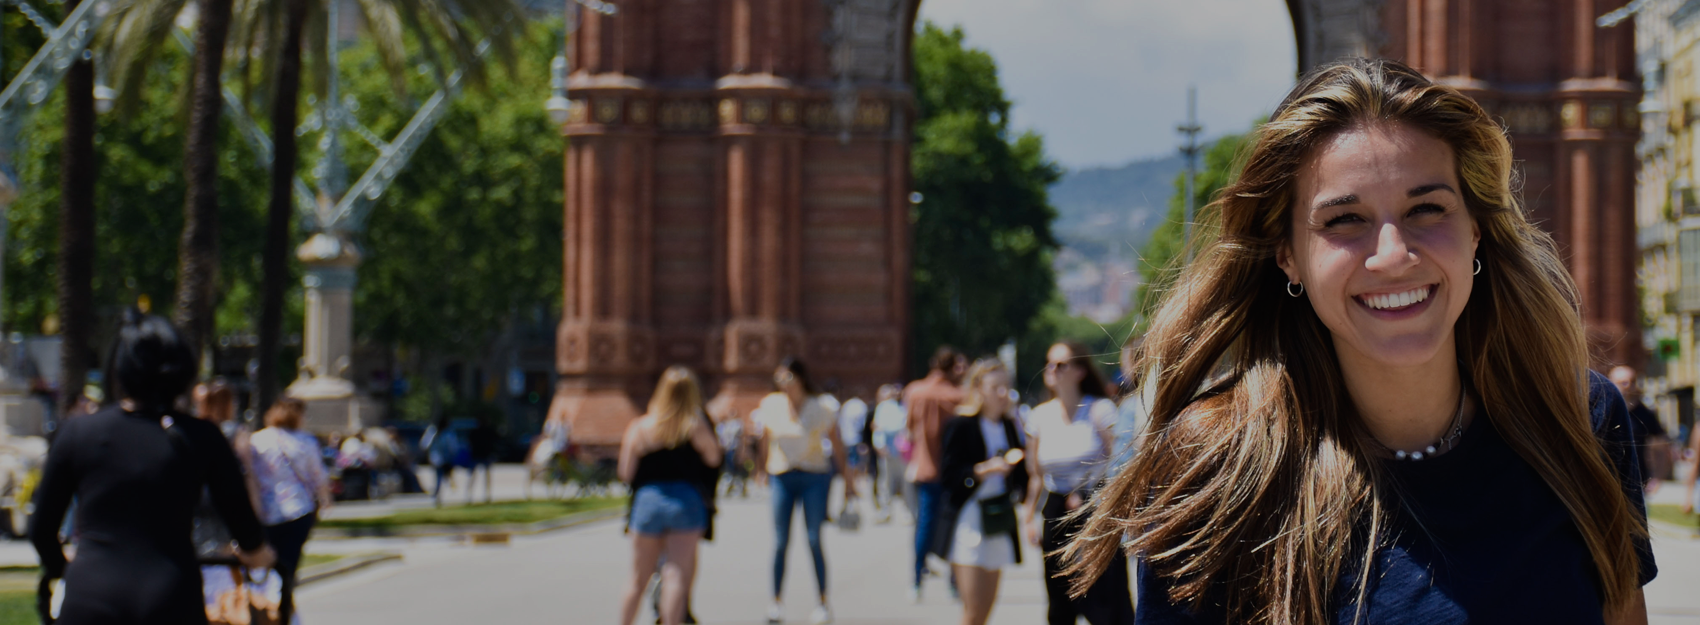 Female student with long hair in front of Arc de Triomf in Barcelona